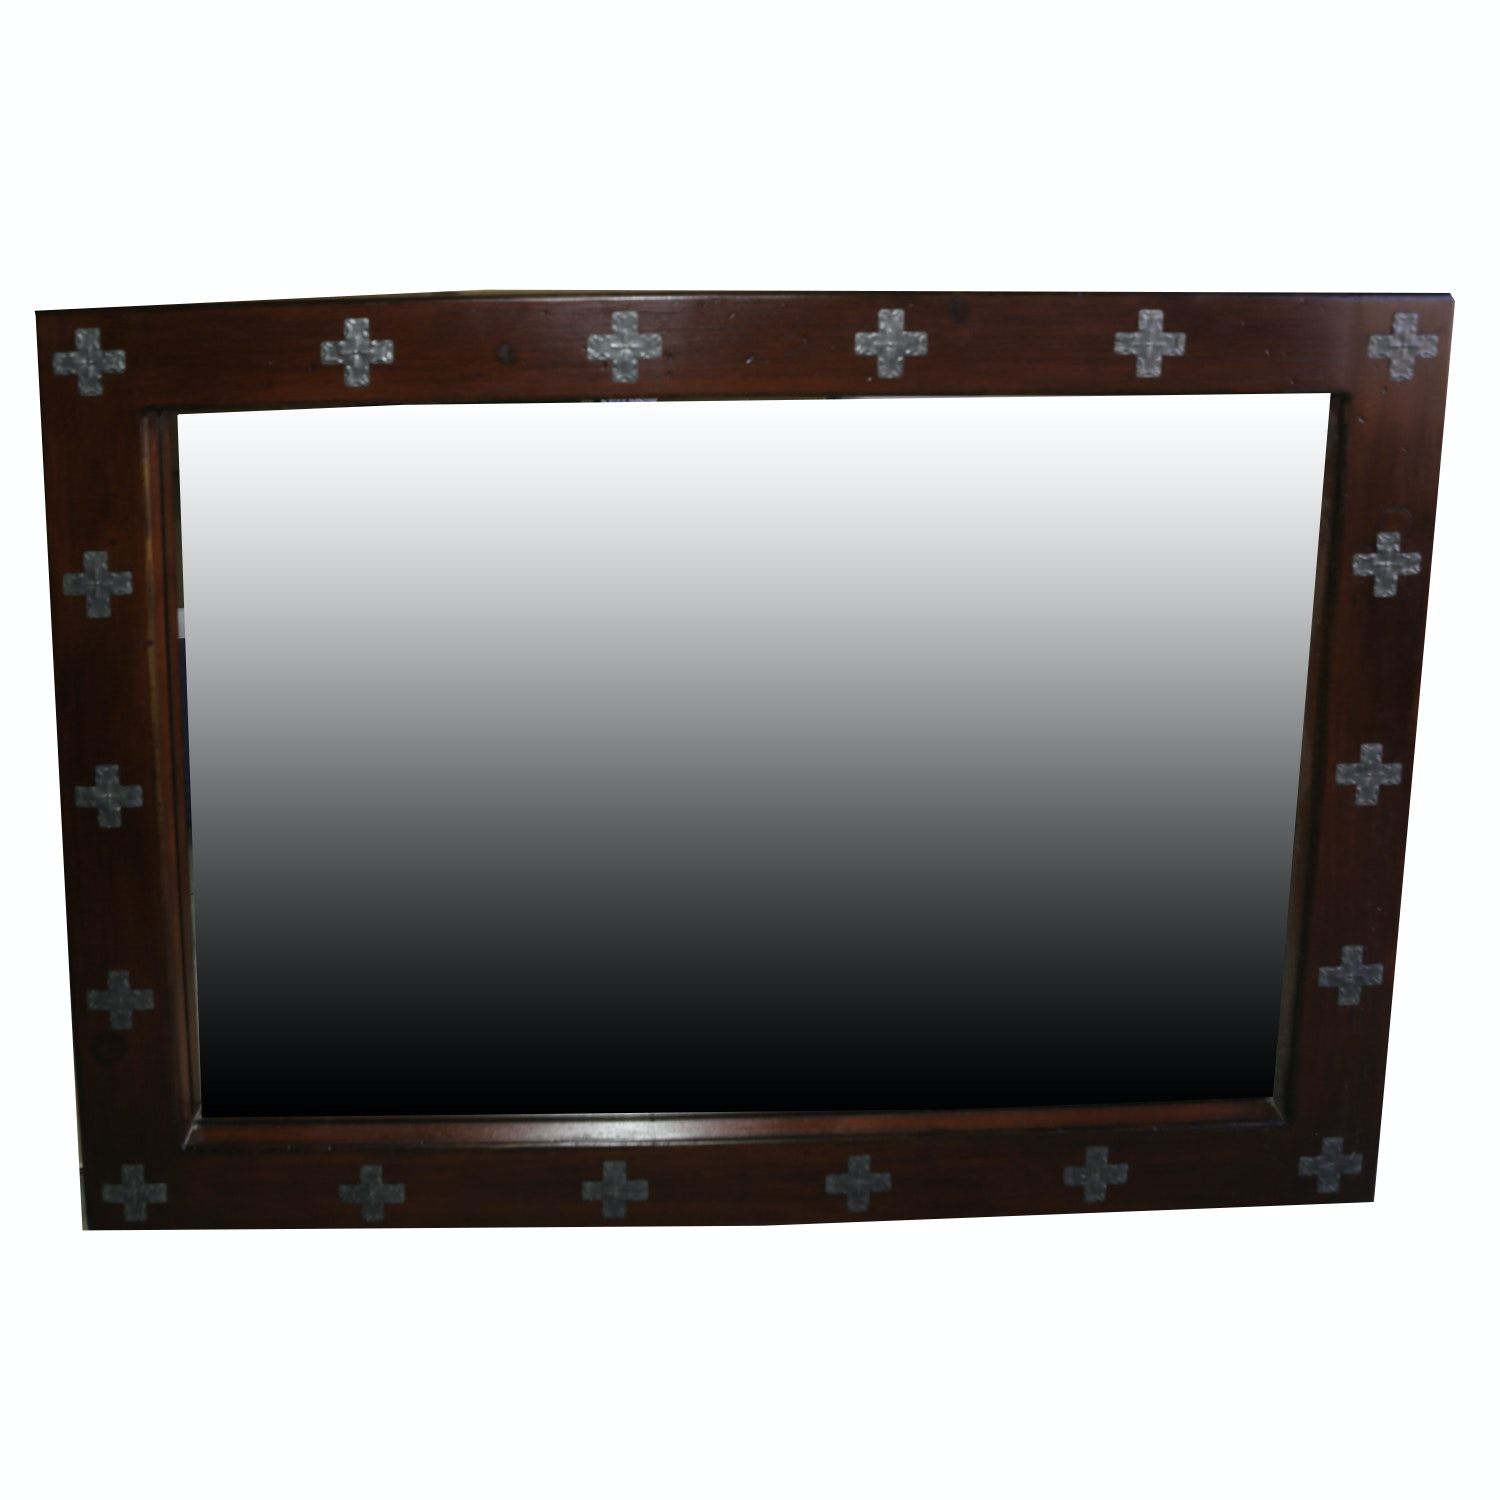 Wood Framed Wall Mirror with Repoussé Tin Cross Accents